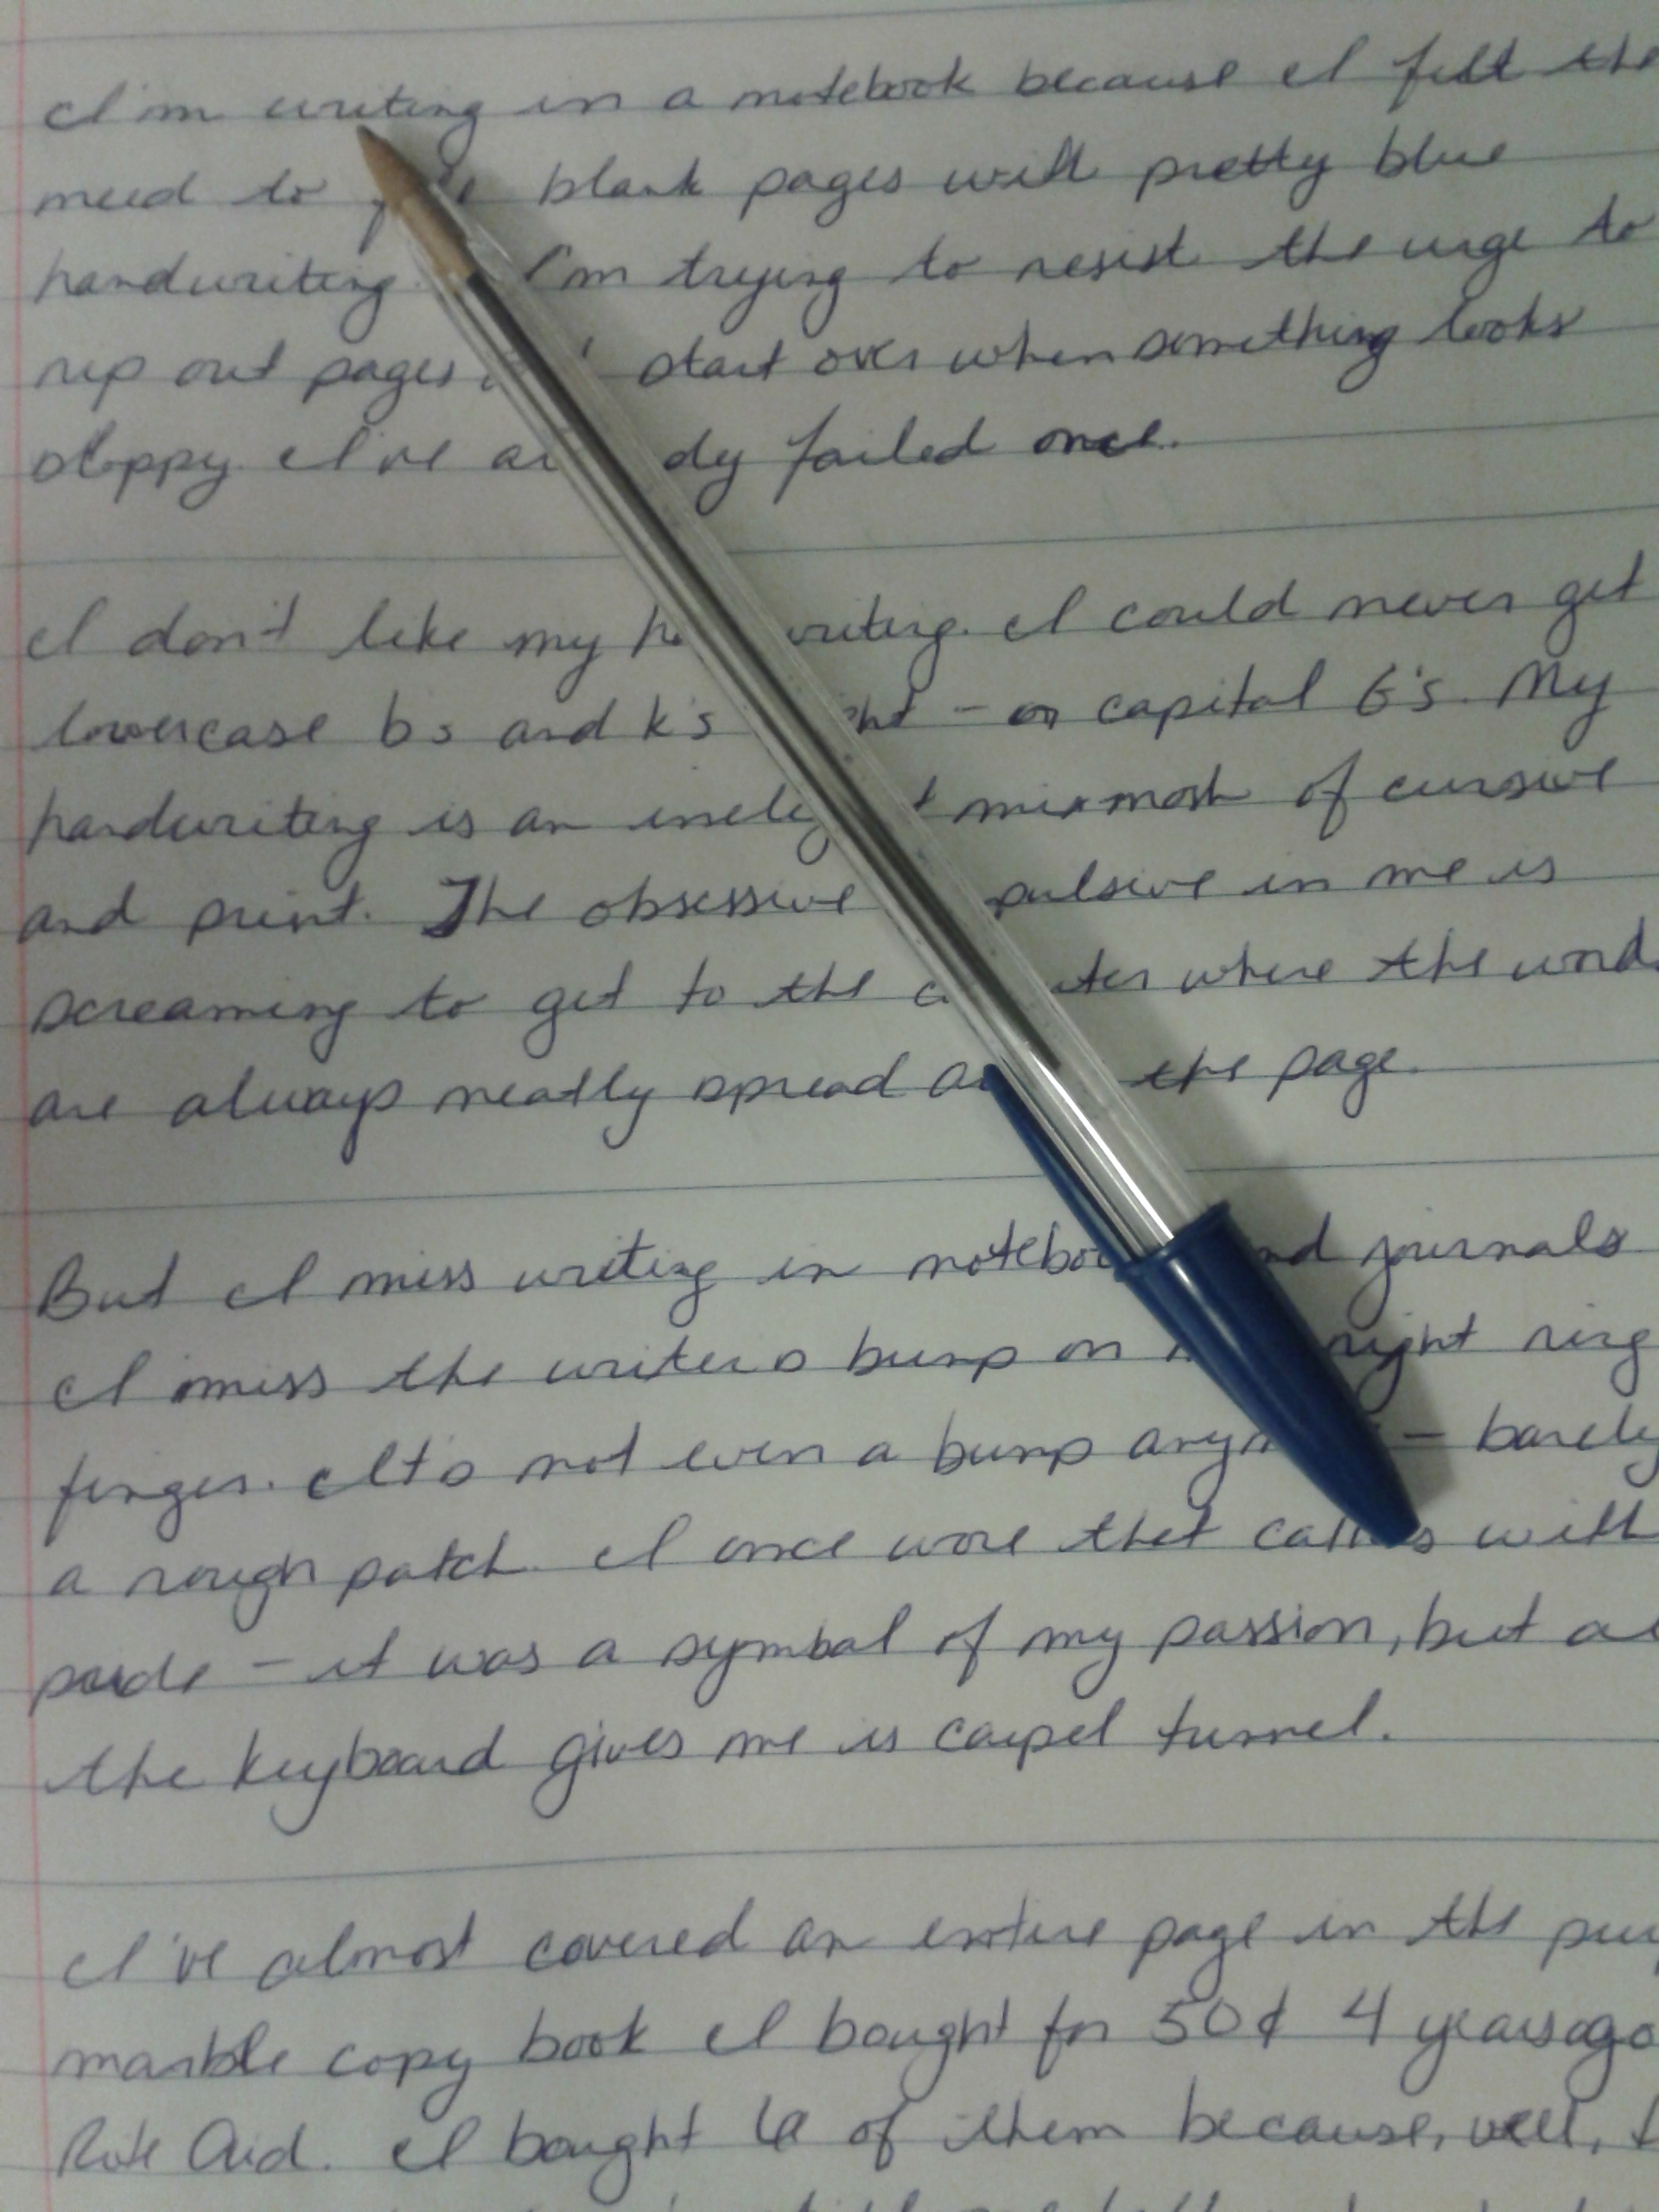 writing callus One very common and relatively innocent bump that occurs near the finger joint  is the callus that can develop from holding a writing implement.